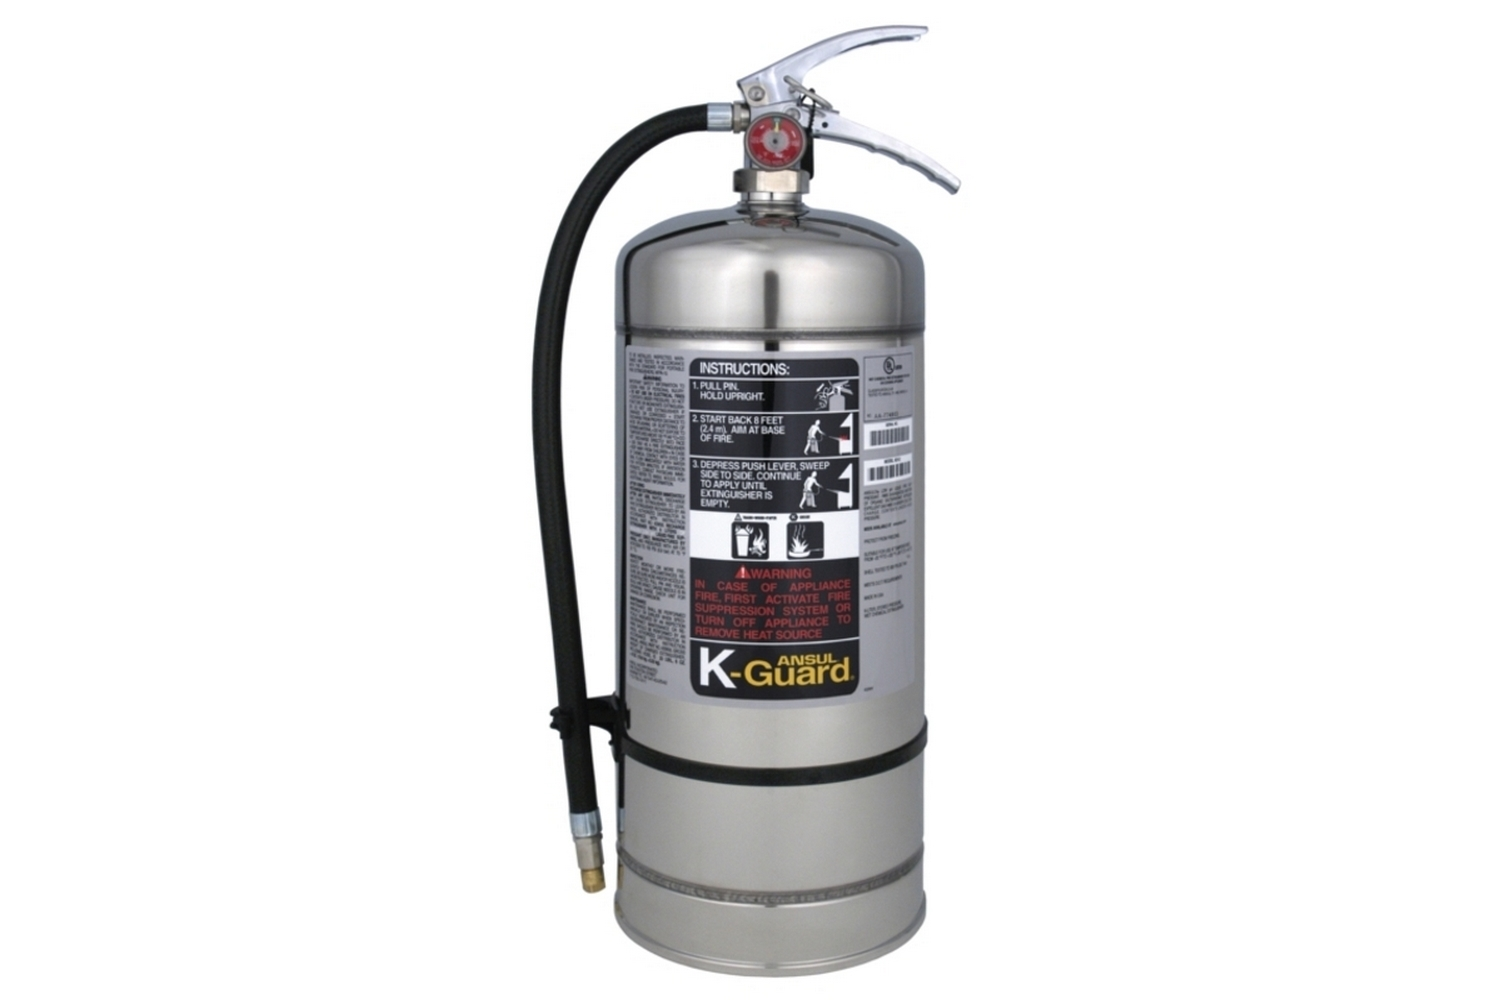 fire extinguisher for kitchen use jeffrey alexander island ansul k guard class 6l